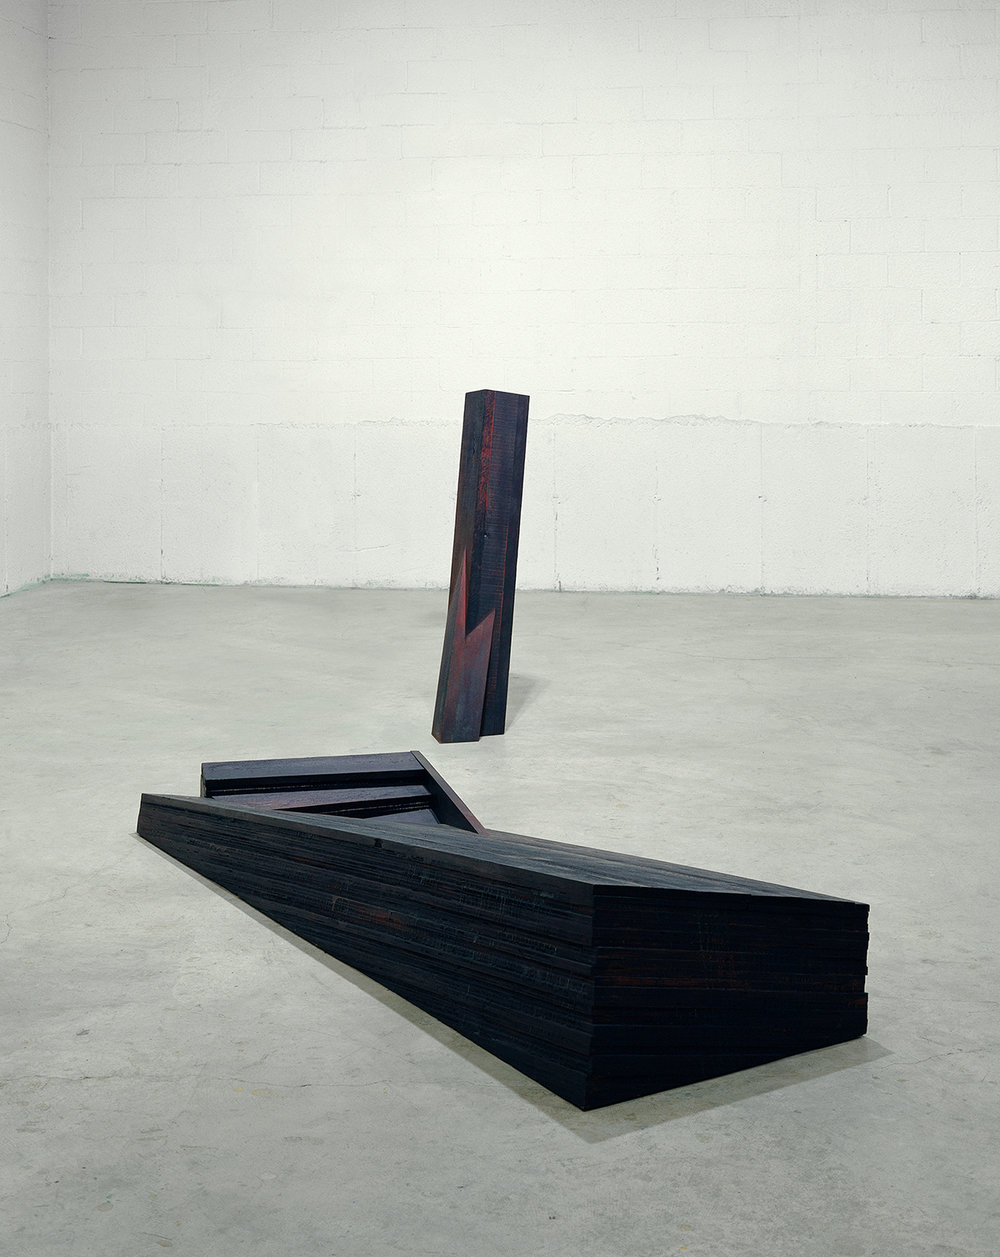 Entailles  (1996)  Bois polychrome, 132 x 90 x 41 cm, collection de l'artiste. photo : Richard-Max Tremblay